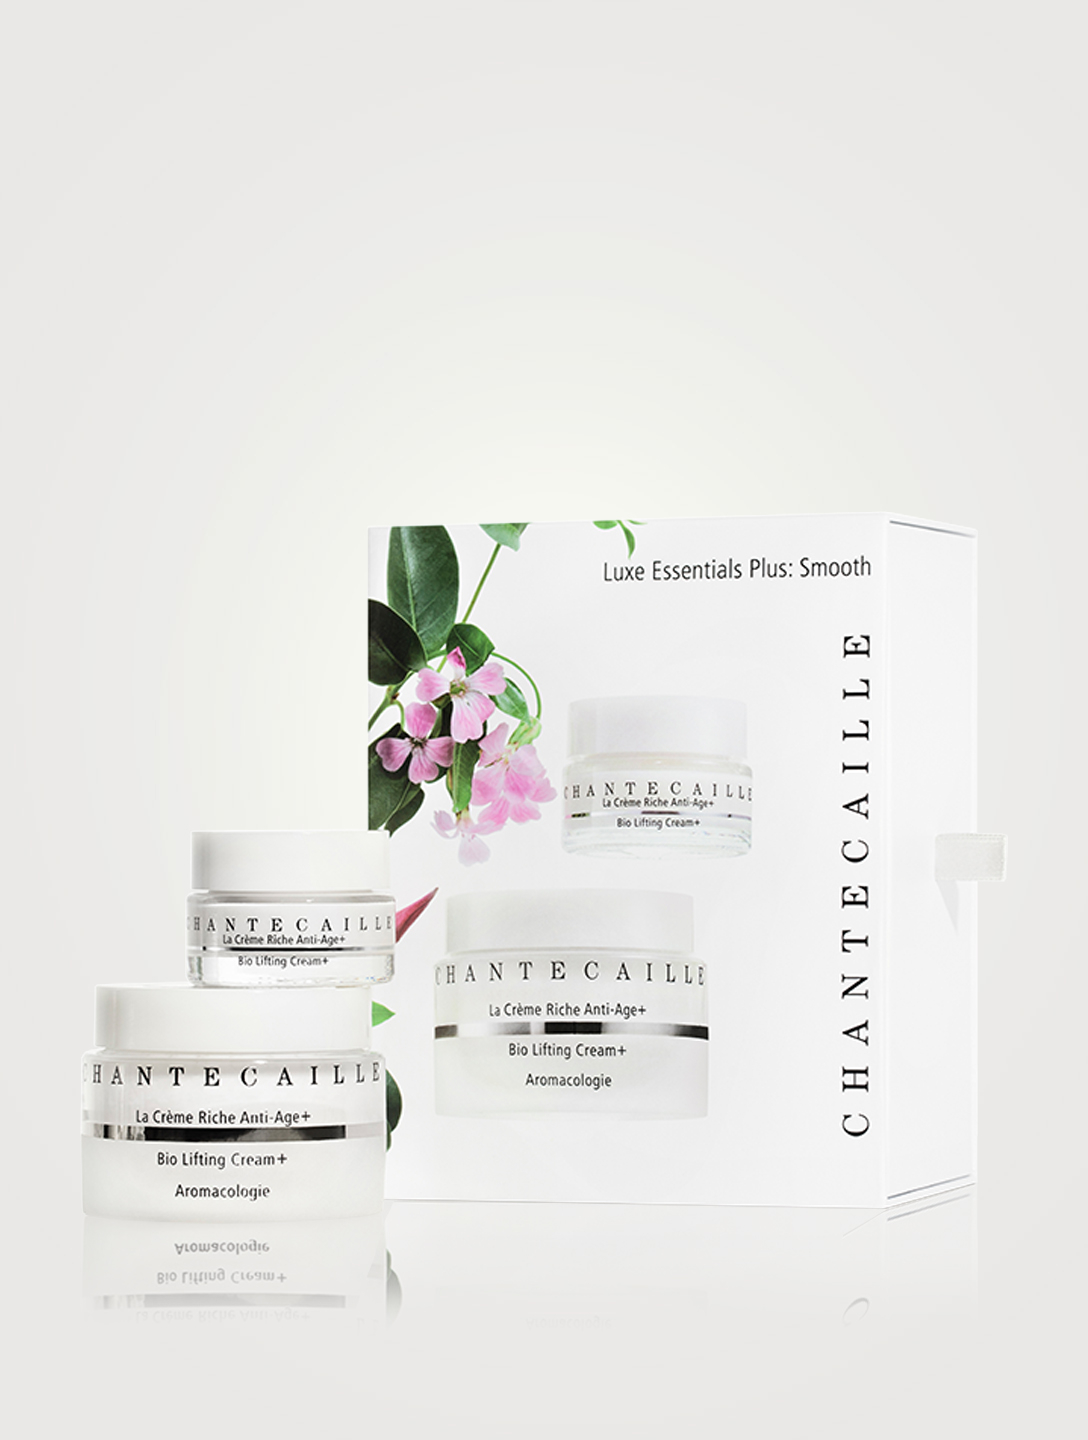 CHANTECAILLE Luxe Essentials Plus: Smooth Set Beauty